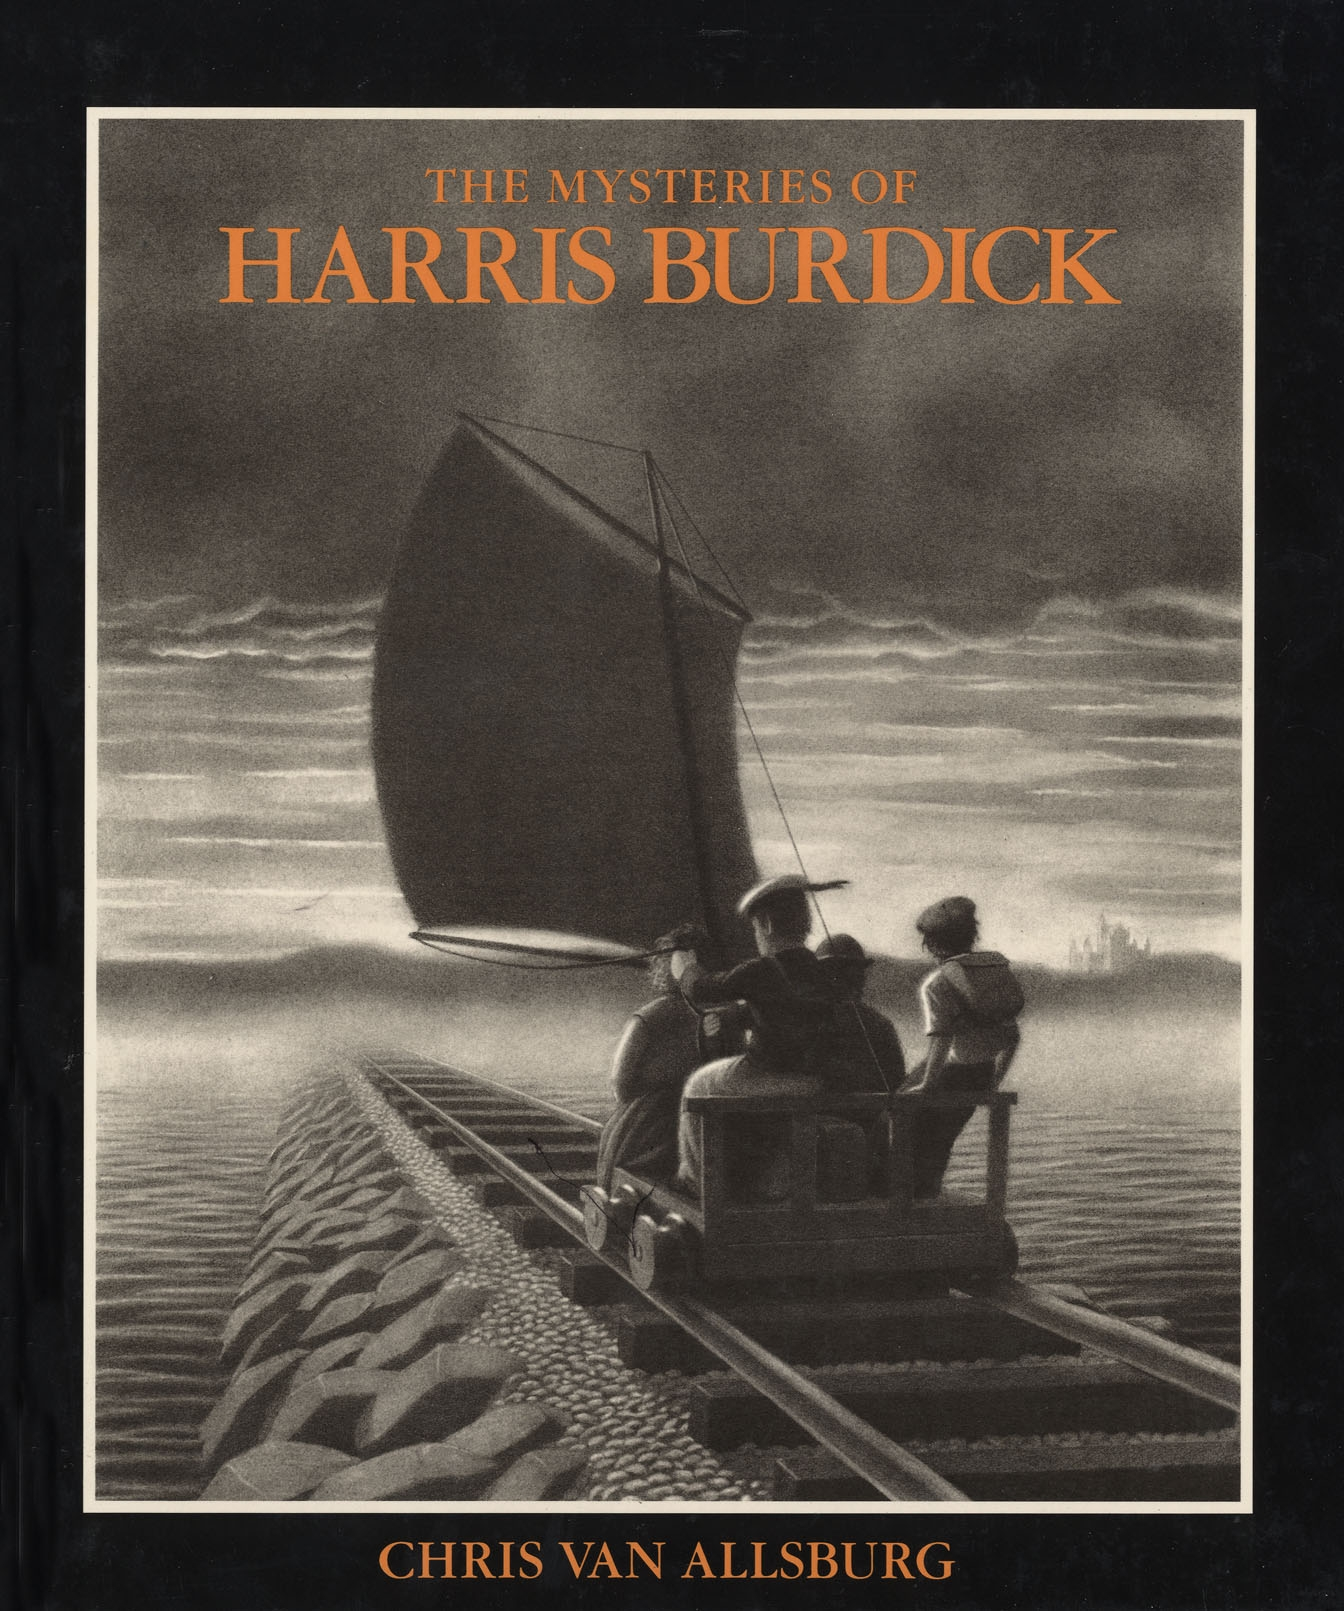 The Mysteries of Harris Burdick by Chris Van Allsburg, ISBN: 9781849392792